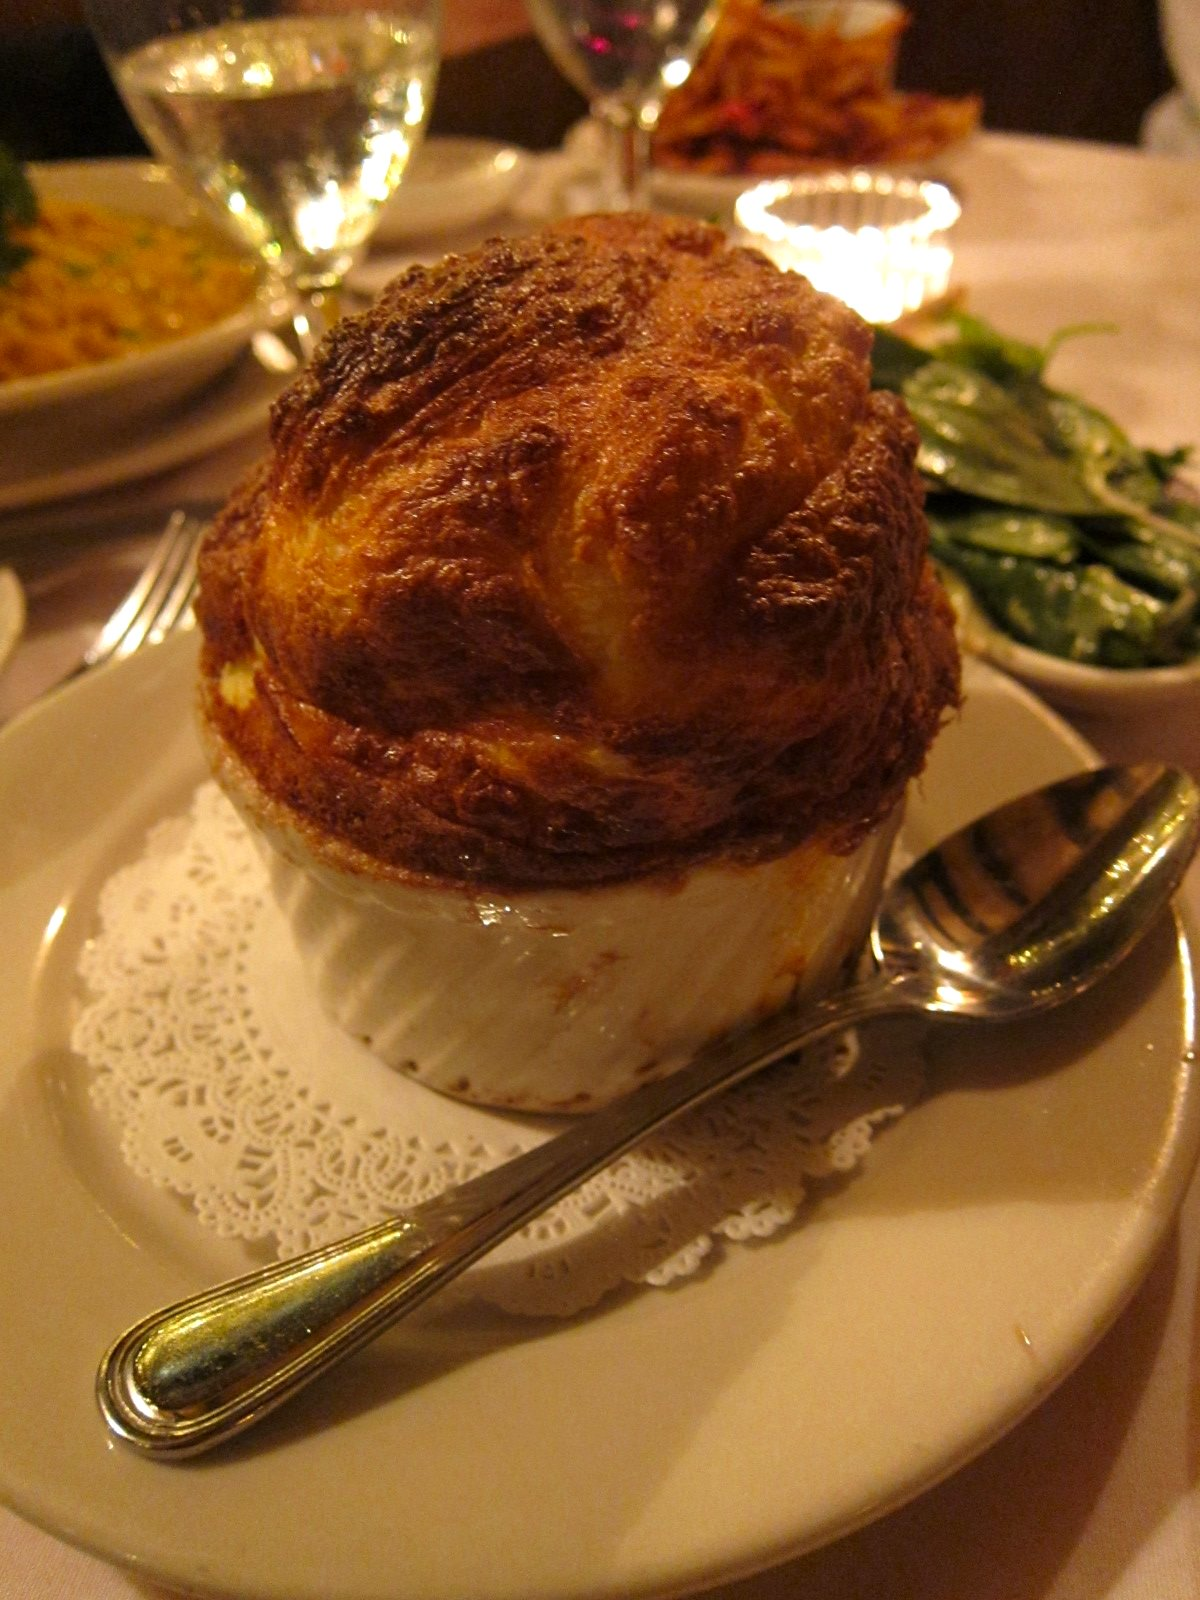 Chronica Domus: Rising To The Occasion: Adventures in Soufflé